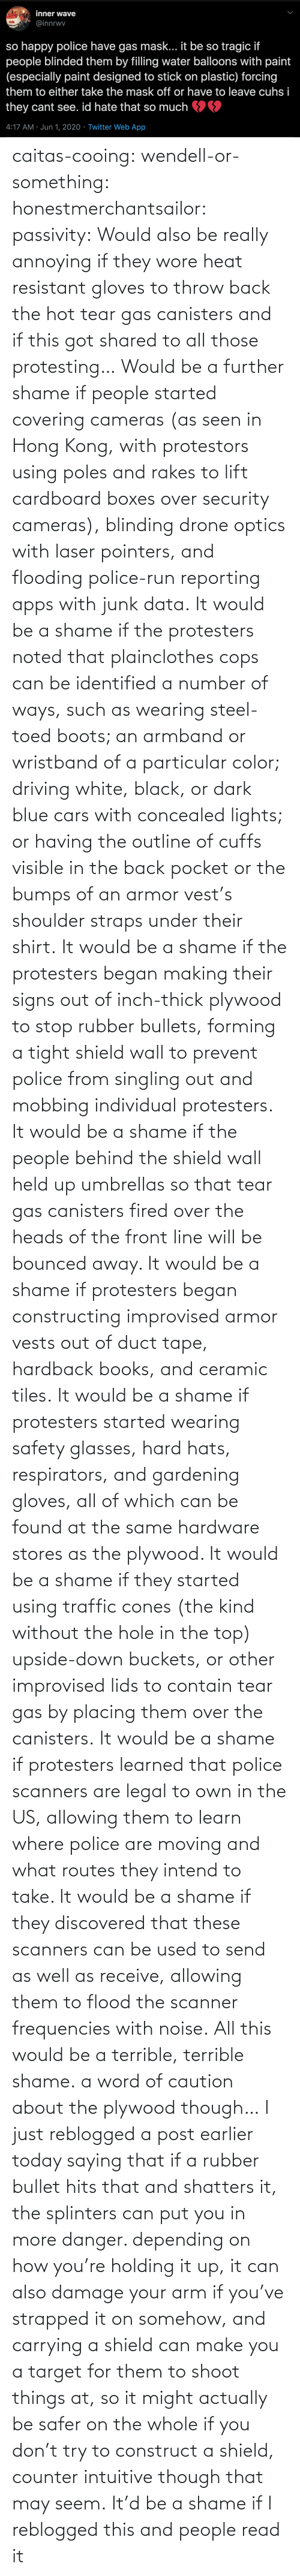 Us: caitas-cooing:  wendell-or-something: honestmerchantsailor:  passivity: Would also be really annoying if they wore heat resistant gloves to throw back the hot tear gas canisters and if this got shared to all those protesting… Would be a further shame if people started covering cameras (as seen in Hong Kong, with protestors using poles and rakes to lift cardboard boxes over security cameras), blinding drone optics with laser pointers, and flooding police-run reporting apps with junk data. It would be a shame if the protesters noted that plainclothes cops can be identified a number of ways, such as wearing steel-toed boots; an armband or wristband of a particular color; driving white, black, or dark blue cars with concealed lights; or having the outline of cuffs visible in the back pocket or the bumps of an armor vest's shoulder straps under their shirt. It would be a shame if the protesters began making their signs out of inch-thick plywood to stop rubber bullets, forming a tight shield wall to prevent police from singling out and mobbing individual protesters. It would be a shame if the people behind the shield wall held up umbrellas so that tear gas canisters fired over the heads of the front line will be bounced away. It would be a shame if protesters began constructing improvised armor vests out of duct tape, hardback books, and ceramic tiles. It would be a shame if protesters started wearing safety glasses, hard hats, respirators, and gardening gloves, all of which can be found at the same hardware stores as the plywood. It would be a shame if they started using traffic cones (the kind without the hole in the top) upside-down buckets, or other improvised lids to contain tear gas by placing them over the canisters. It would be a shame if protesters learned that police scanners are legal to own in the US, allowing them to learn where police are moving and what routes they intend to take. It would be a shame if they discovered that these scanners can be used to send as well as receive, allowing them to flood the scanner frequencies with noise. All this would be a terrible, terrible shame.    a word of caution about the plywood though… I just reblogged a post earlier today saying that if a rubber bullet hits that and shatters it, the splinters can put you in more danger. depending on how you're holding it up, it can also damage your arm if you've strapped it on somehow, and carrying a shield can make you a target for them to shoot things at, so it might actually be safer on the whole if you don't try to construct a shield, counter intuitive though that may seem.    It'd be a shame if I reblogged this and people read it